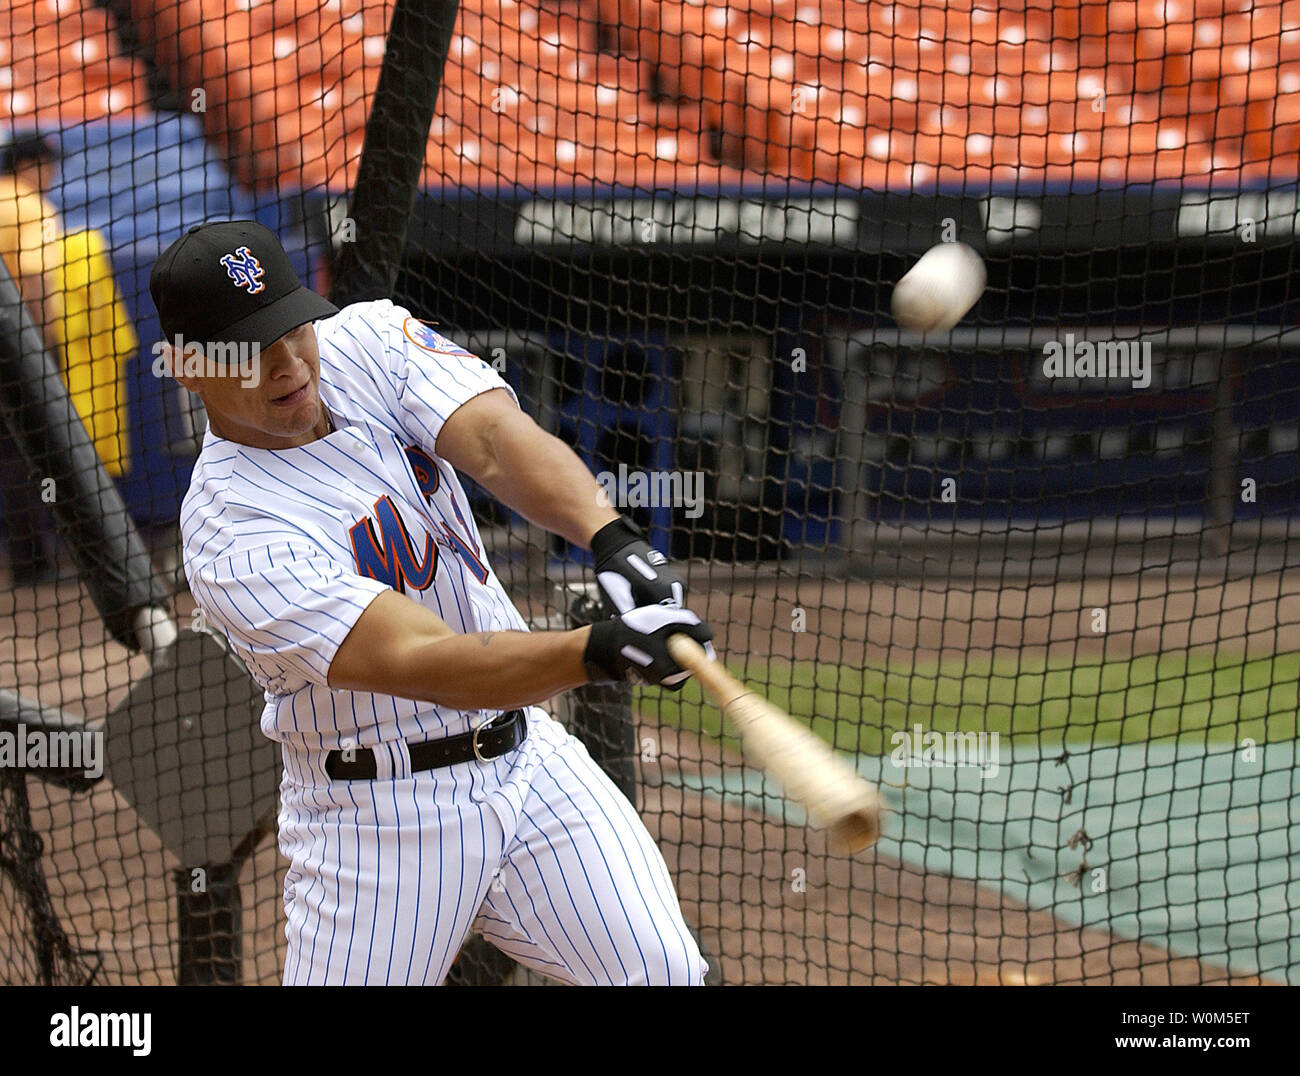 Senior Airman Chardo Richardson, a boom operator with the 32nd Air Refueling Squadron, McGuire Air Force Base, N.J.,  hits a ball in batting practice with the New York Mets, June 22, 2004.  Richardson was part of a job swap with Mets pitcher Al Leiter who flew on a an Air Force plane recently. (UPI Photo/Kenn Mann/Air Force) Stock Photo